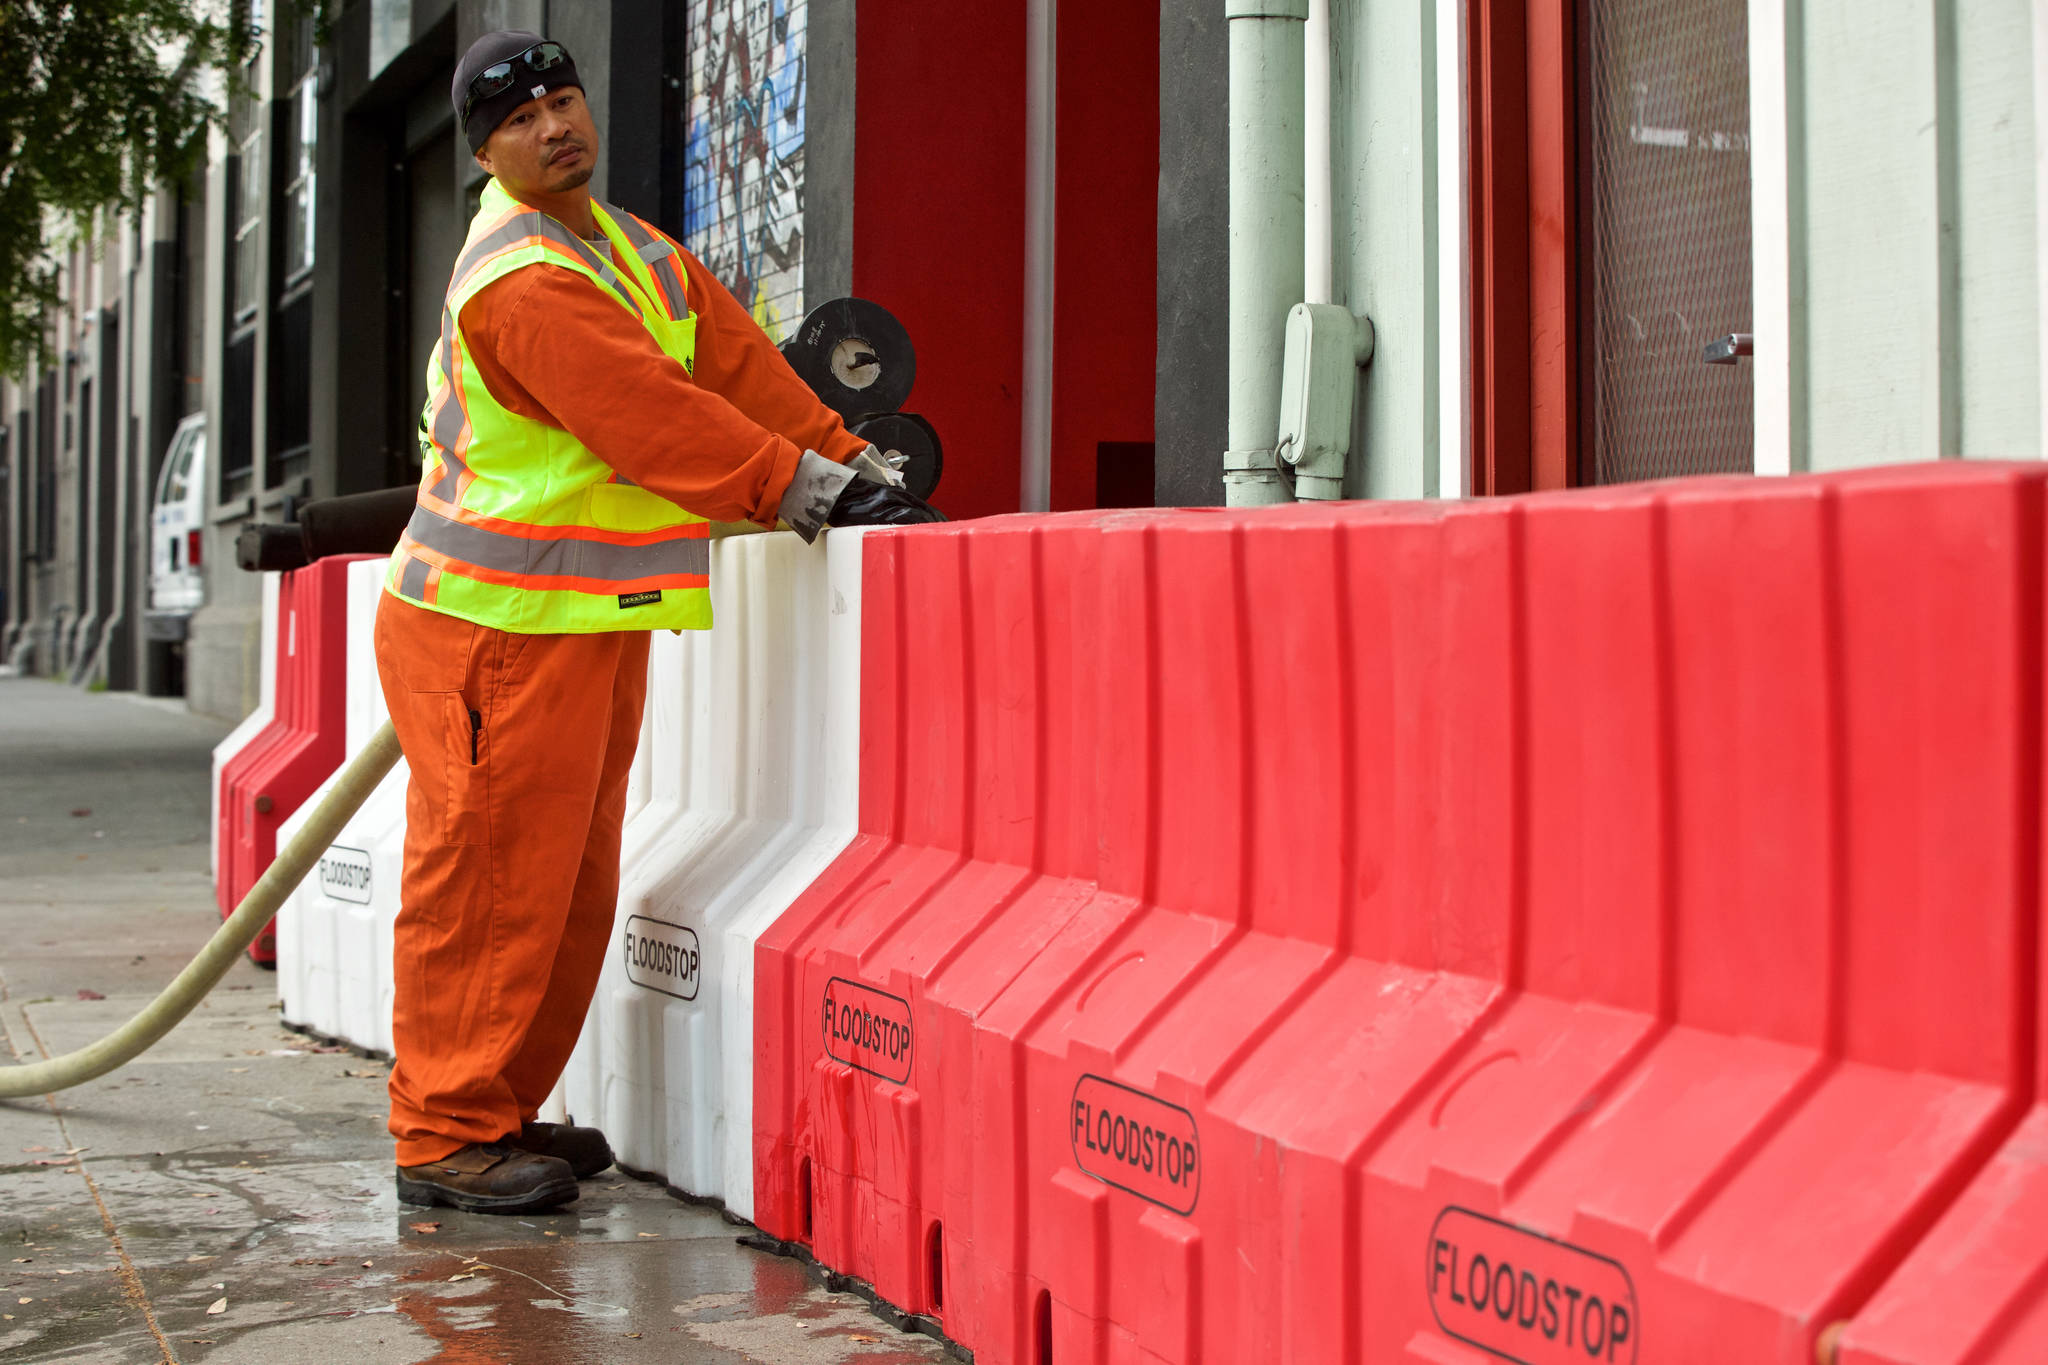 A San Francisco Public Utility Commission Wastewater employee fills flood barriers along Folsom Street near the intersection with 17th Street ahead of a forecasted strong storm. The area is one of several around The City with persistent flooding problems. (Kevin N. Hume/2018 S.F. Examiner)